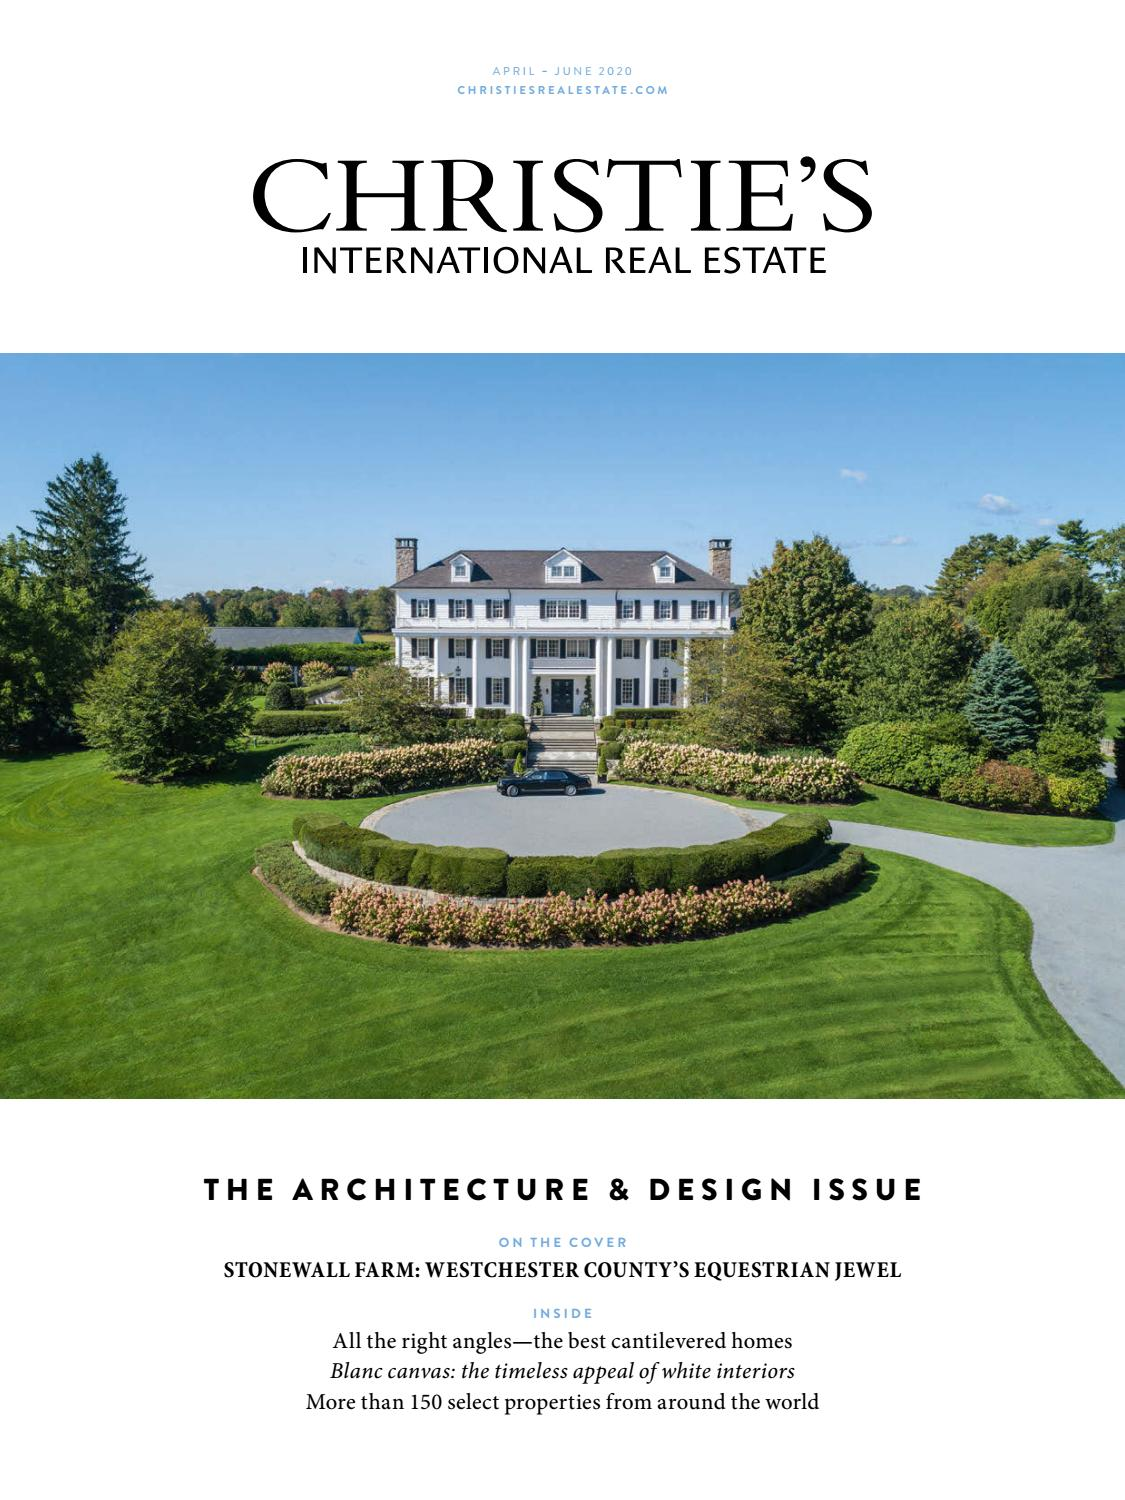 The Architecture Design Issue April June 2020 Christie S International Real Estate By North Harbor Christie S Issuu